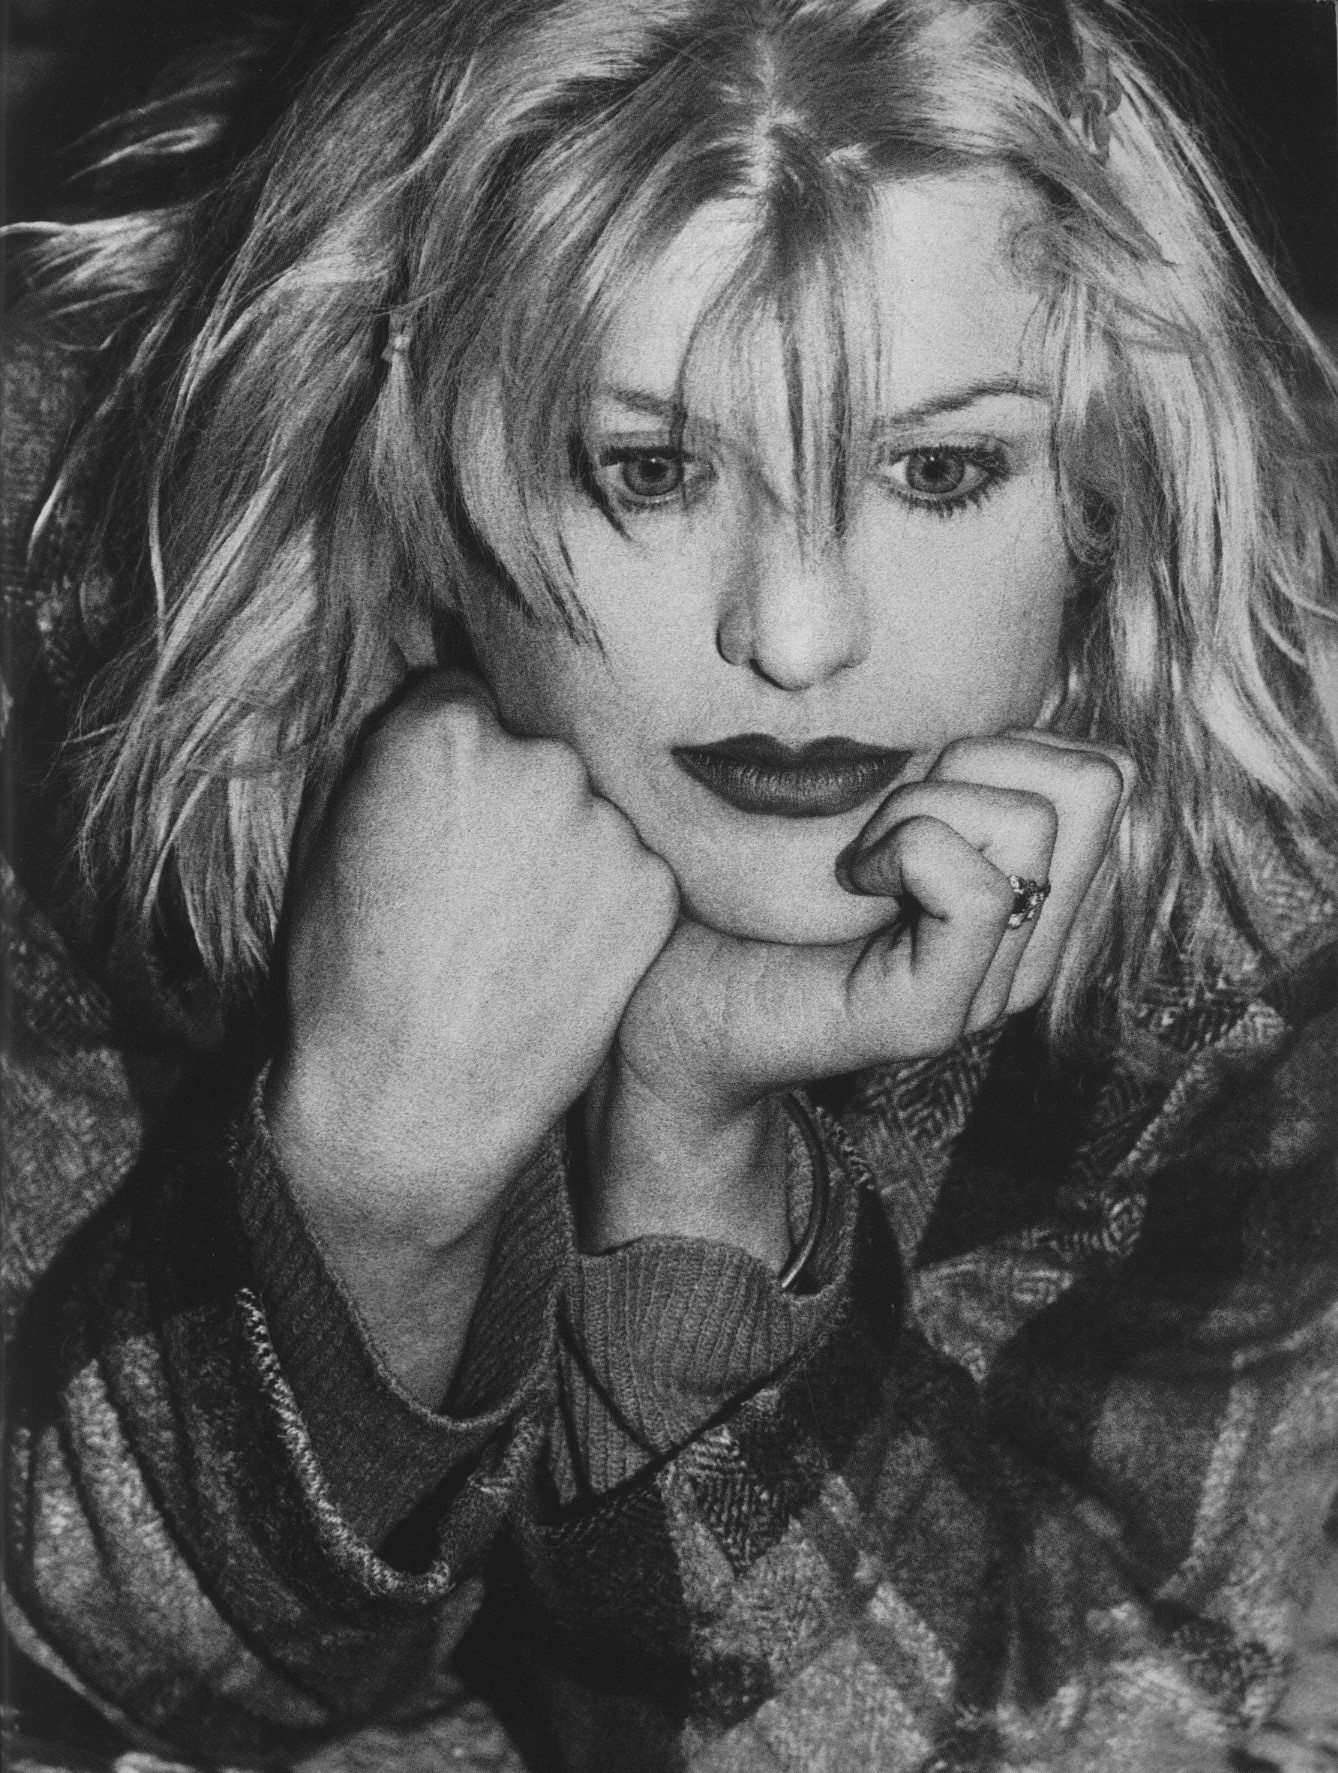 COURTNEY LOVE PHOTOGRAPHY NORMAN WATSON THE FACE NO 53 FEBRUARY 1993